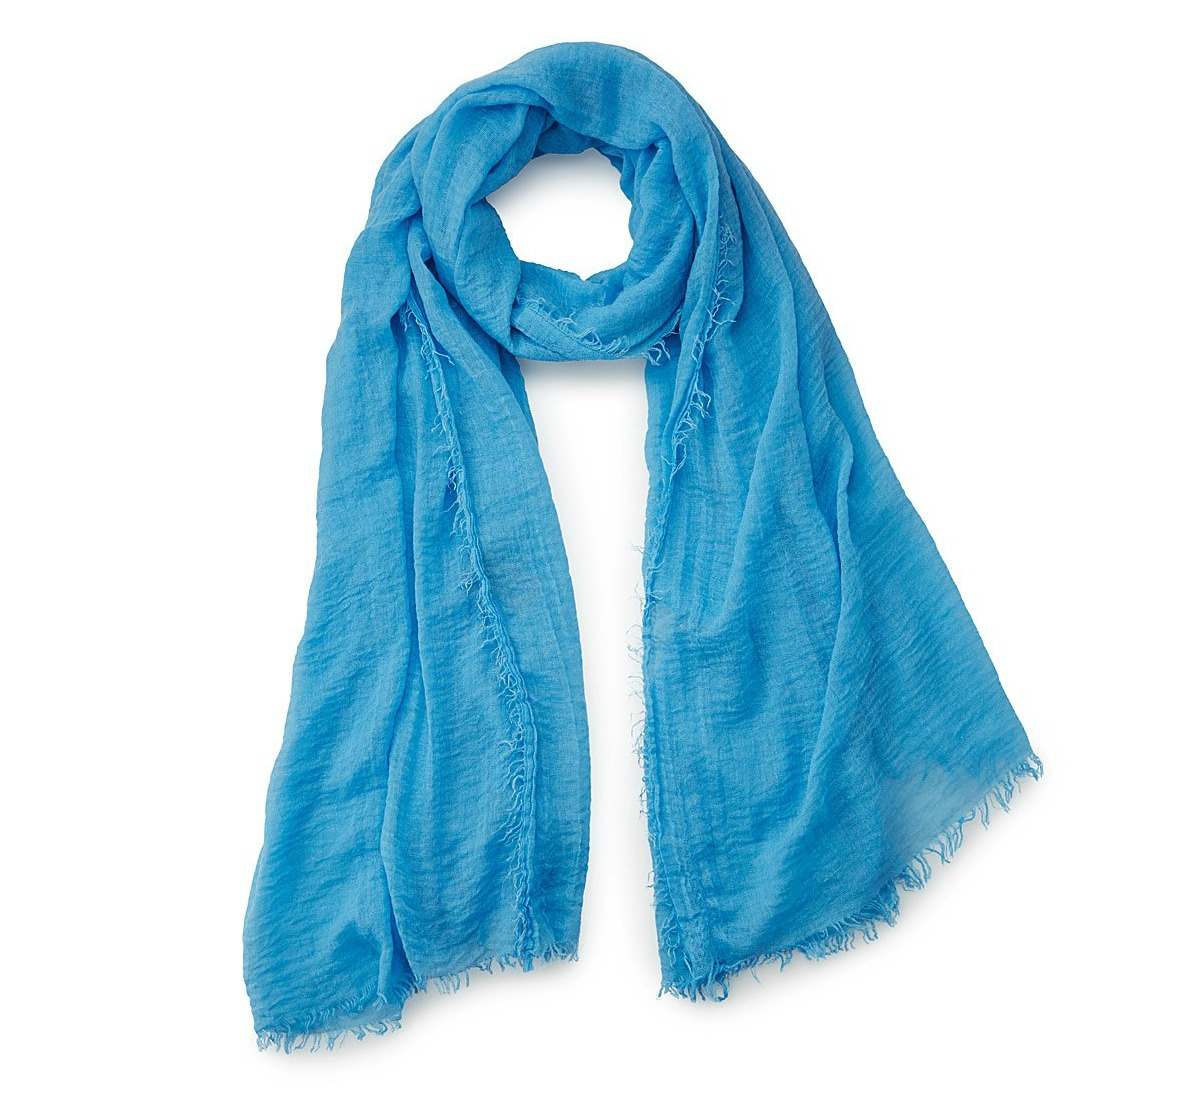 Insect Repellent Summer Scarf | UncommonGoods